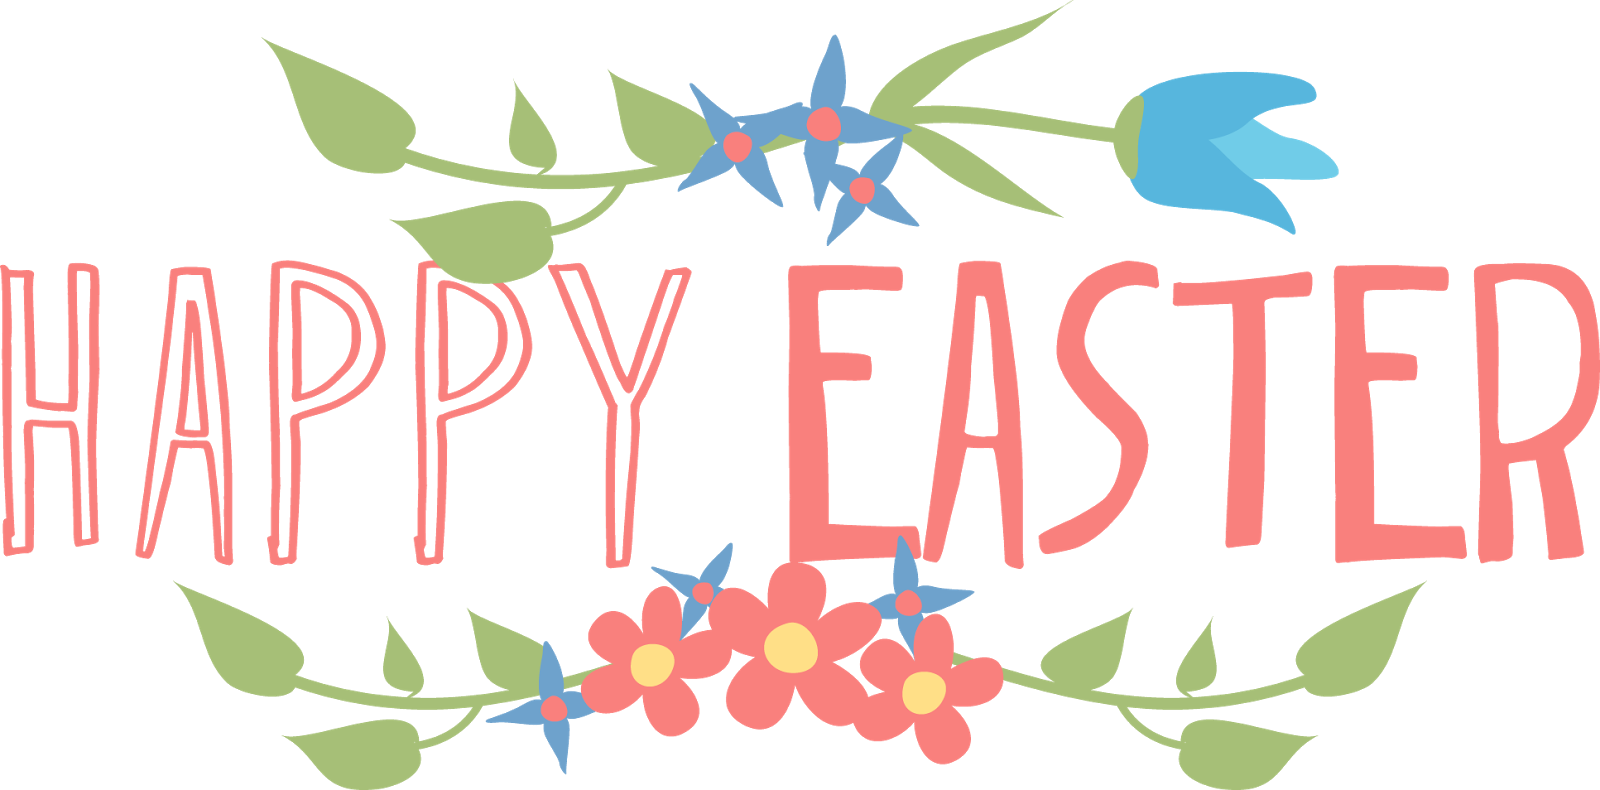 1521073960Happy-Easter-text-png